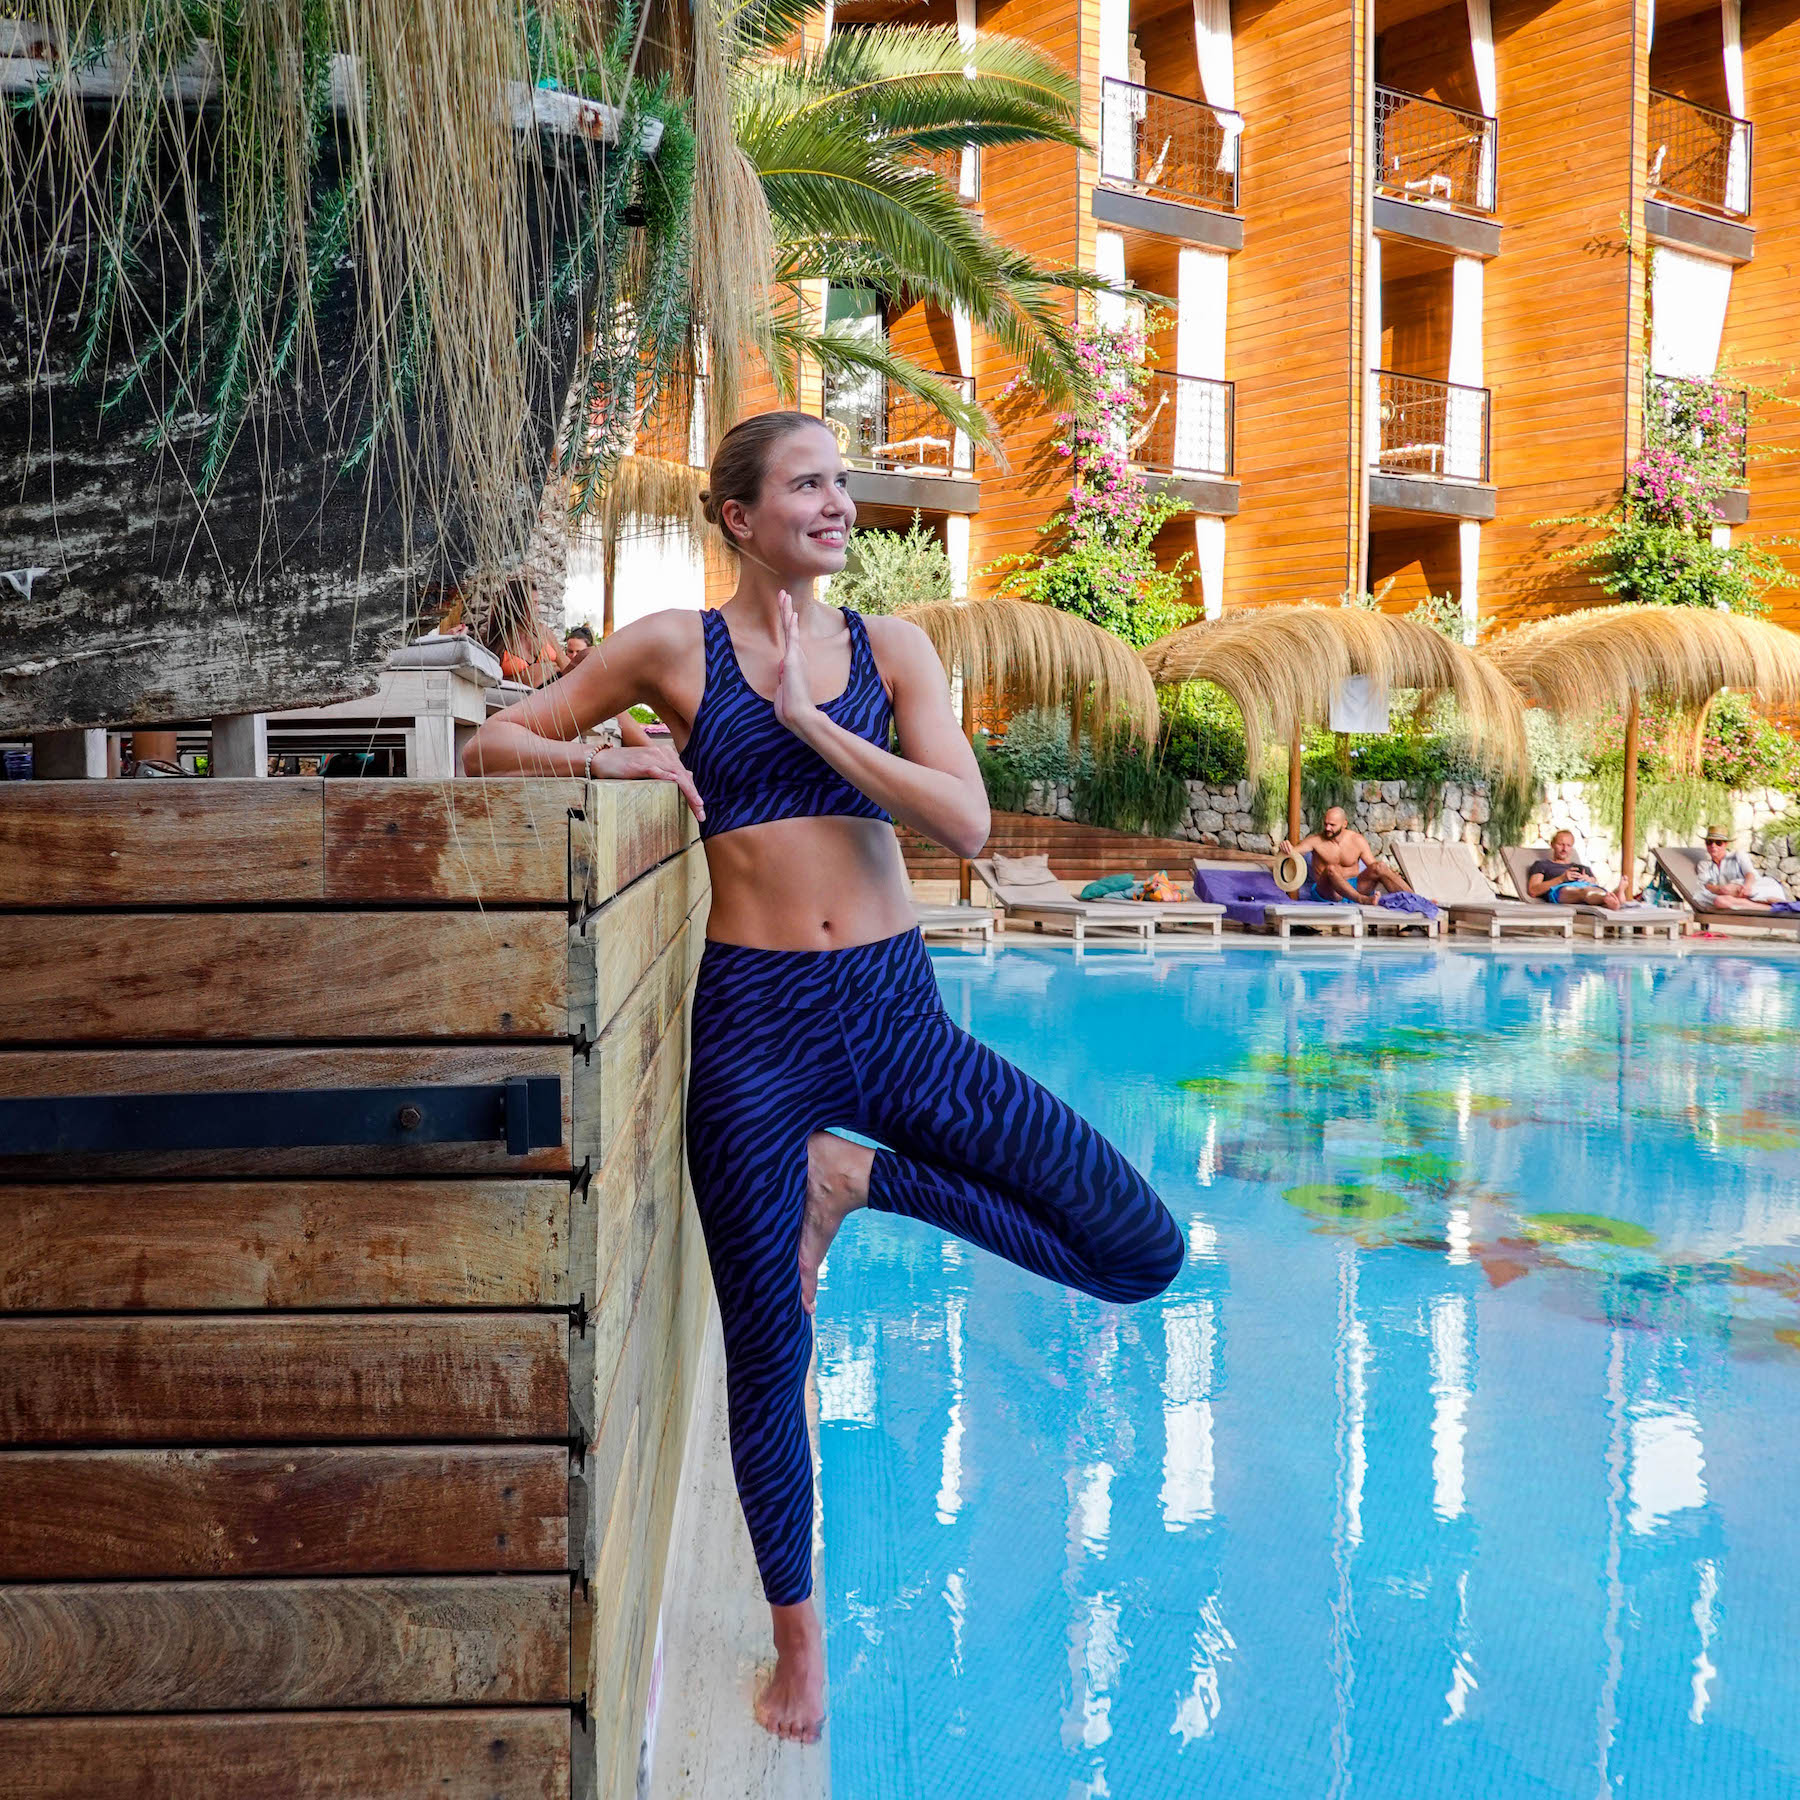 Yoga-Retreat im Bikini Island & Mountain Hotel in Port de Soller suelovesnyc_yoga_retreat_auf_mallorca_im_bikini_island_mountain_hotel_in_port_de_soller